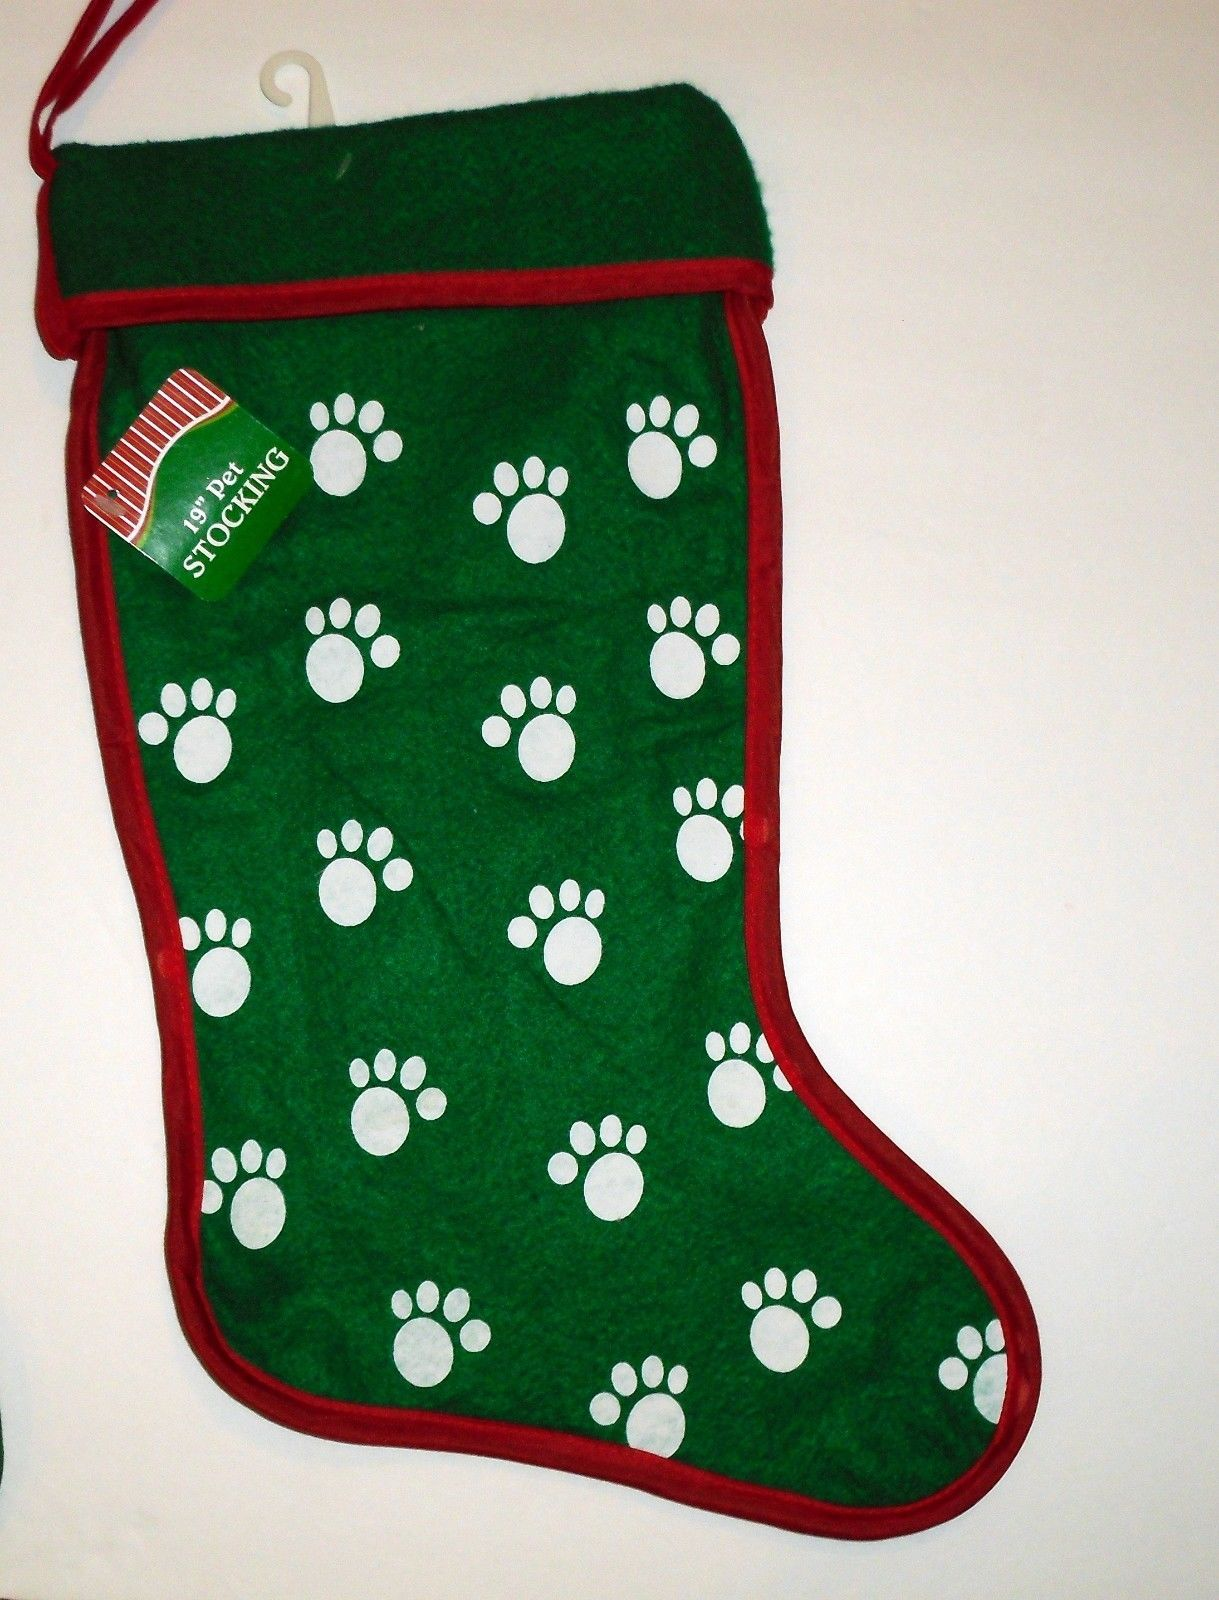 068b0e2143a NEW Large 19   Pet DOG or CAT Christmas Stocking Paw Prints Red or Green   Stockings  ad  Sponsored  Under10dollars  Bargain  Christmas  holiday  Shop   Buy ...